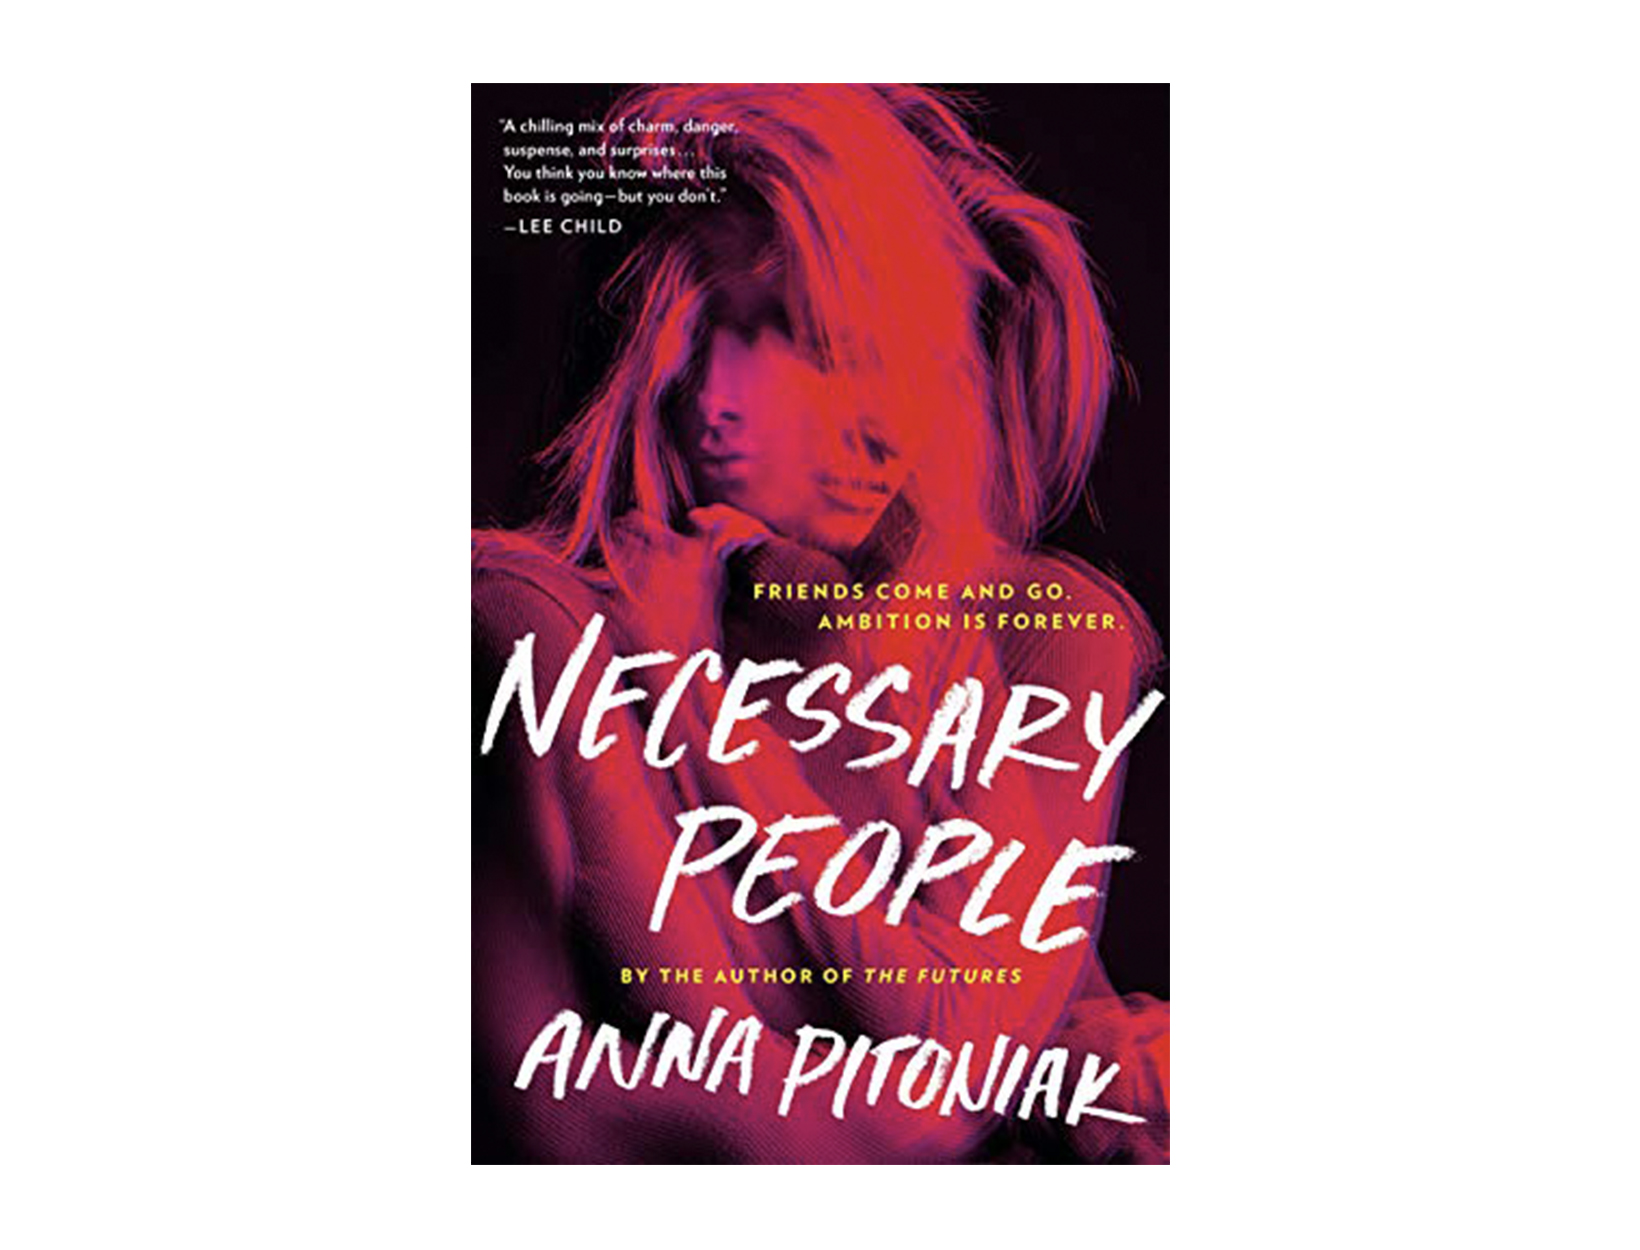 <em>Necessary People</em> by Anna Pitoniak